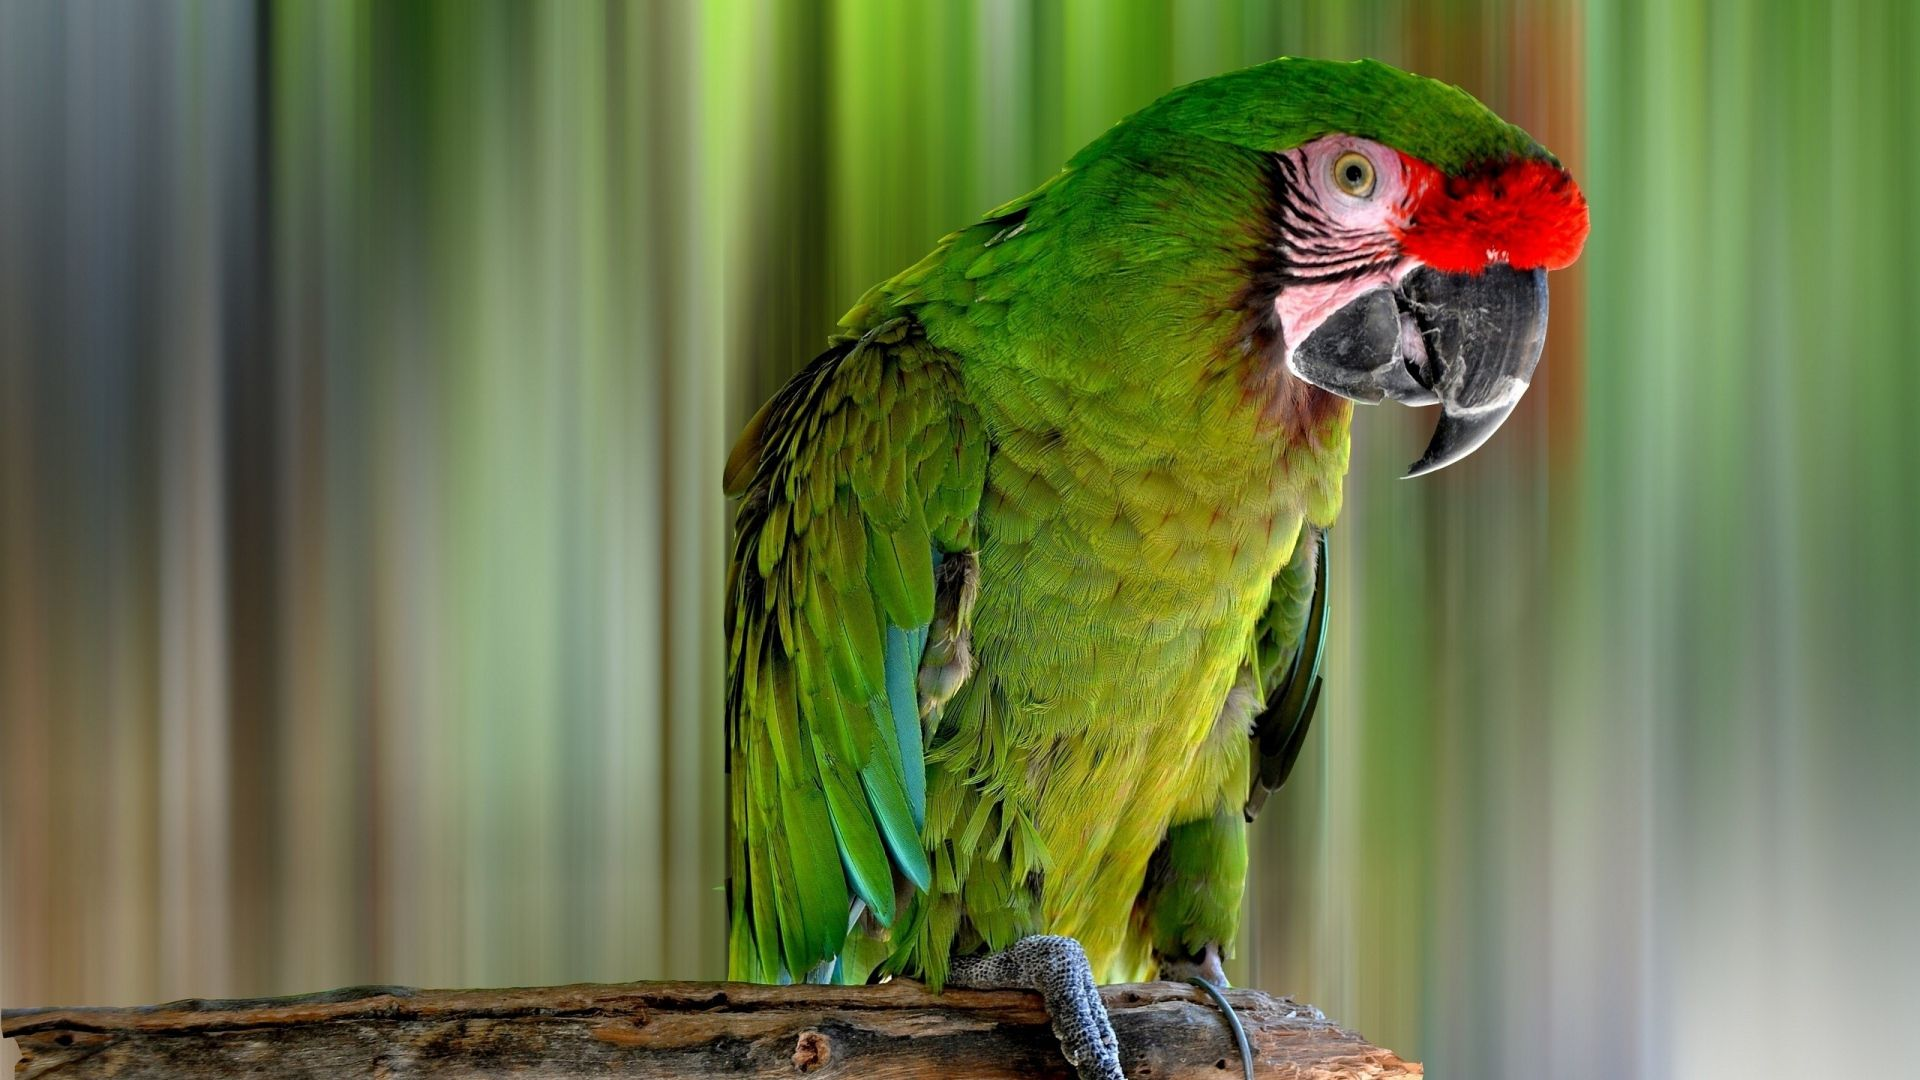 Parakeet wallpaper photo